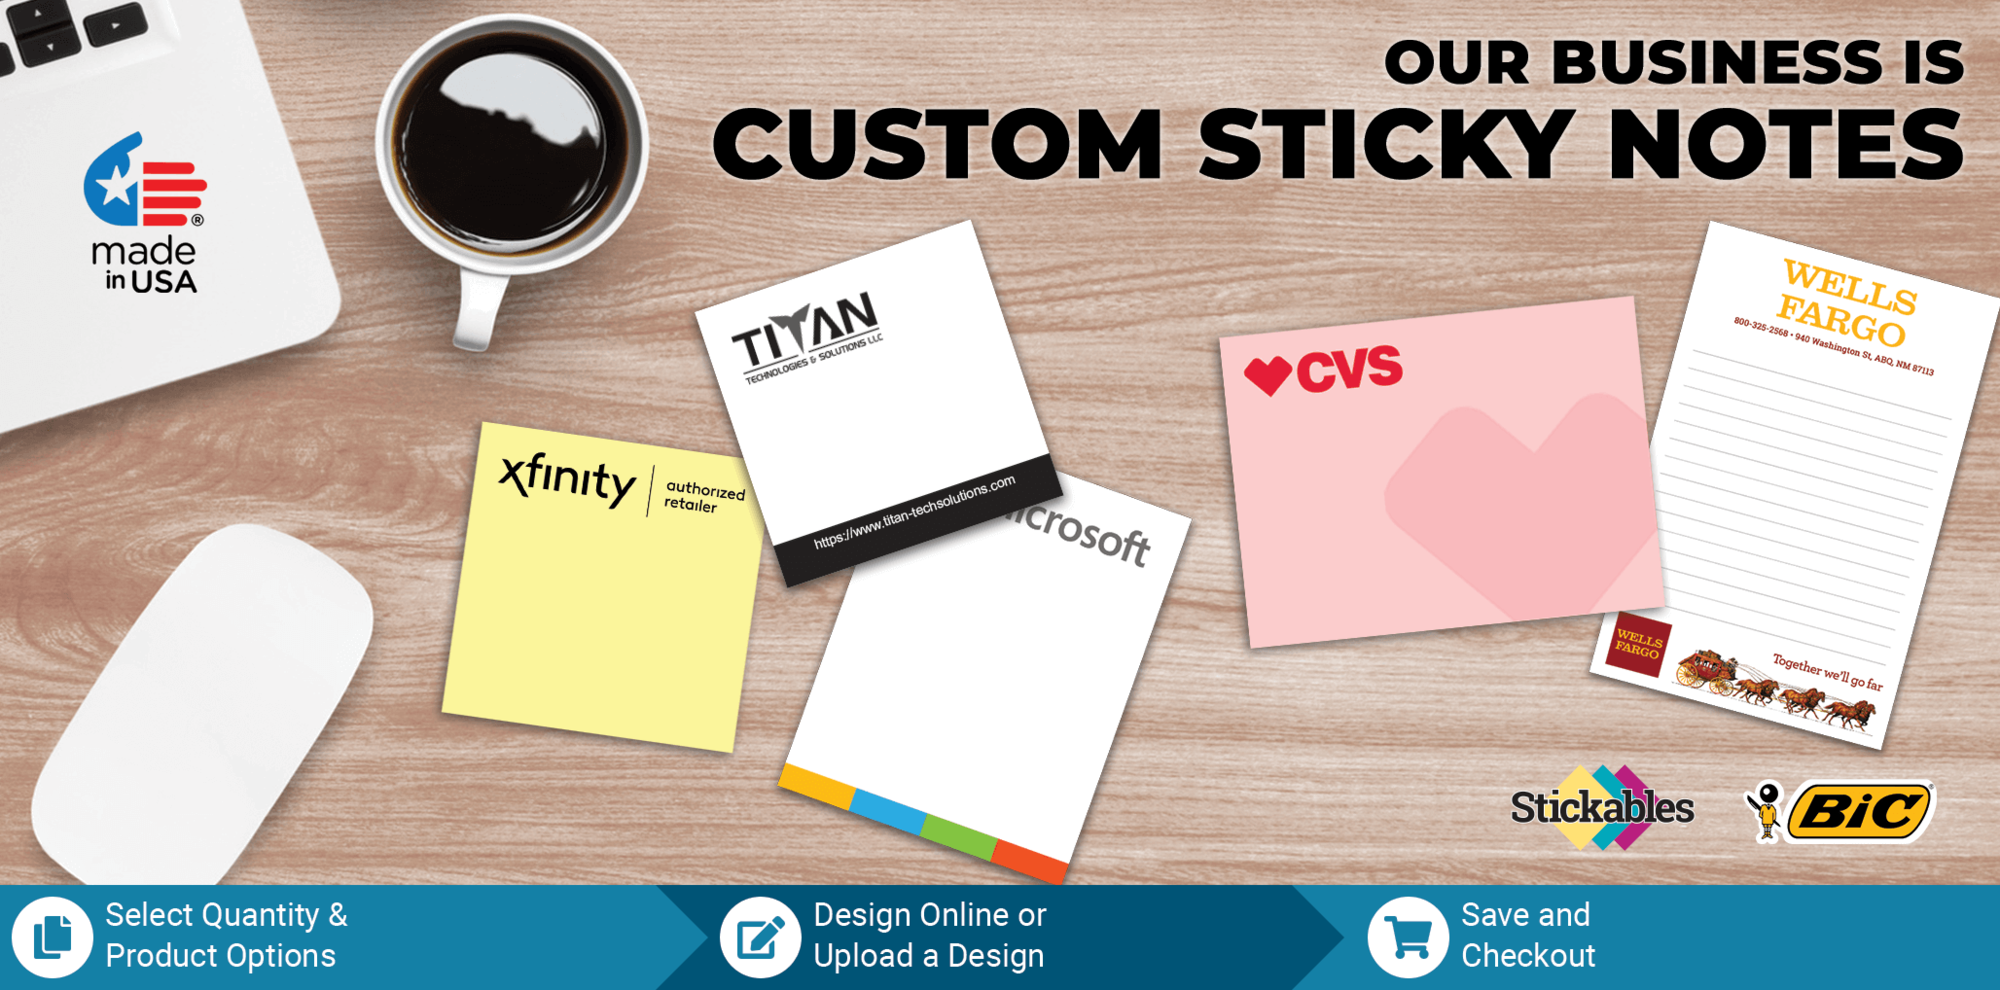 https://printpps.com/images/products_gallery_images/Custom-Sticky-Notes_Product-Page-Banner5643.png